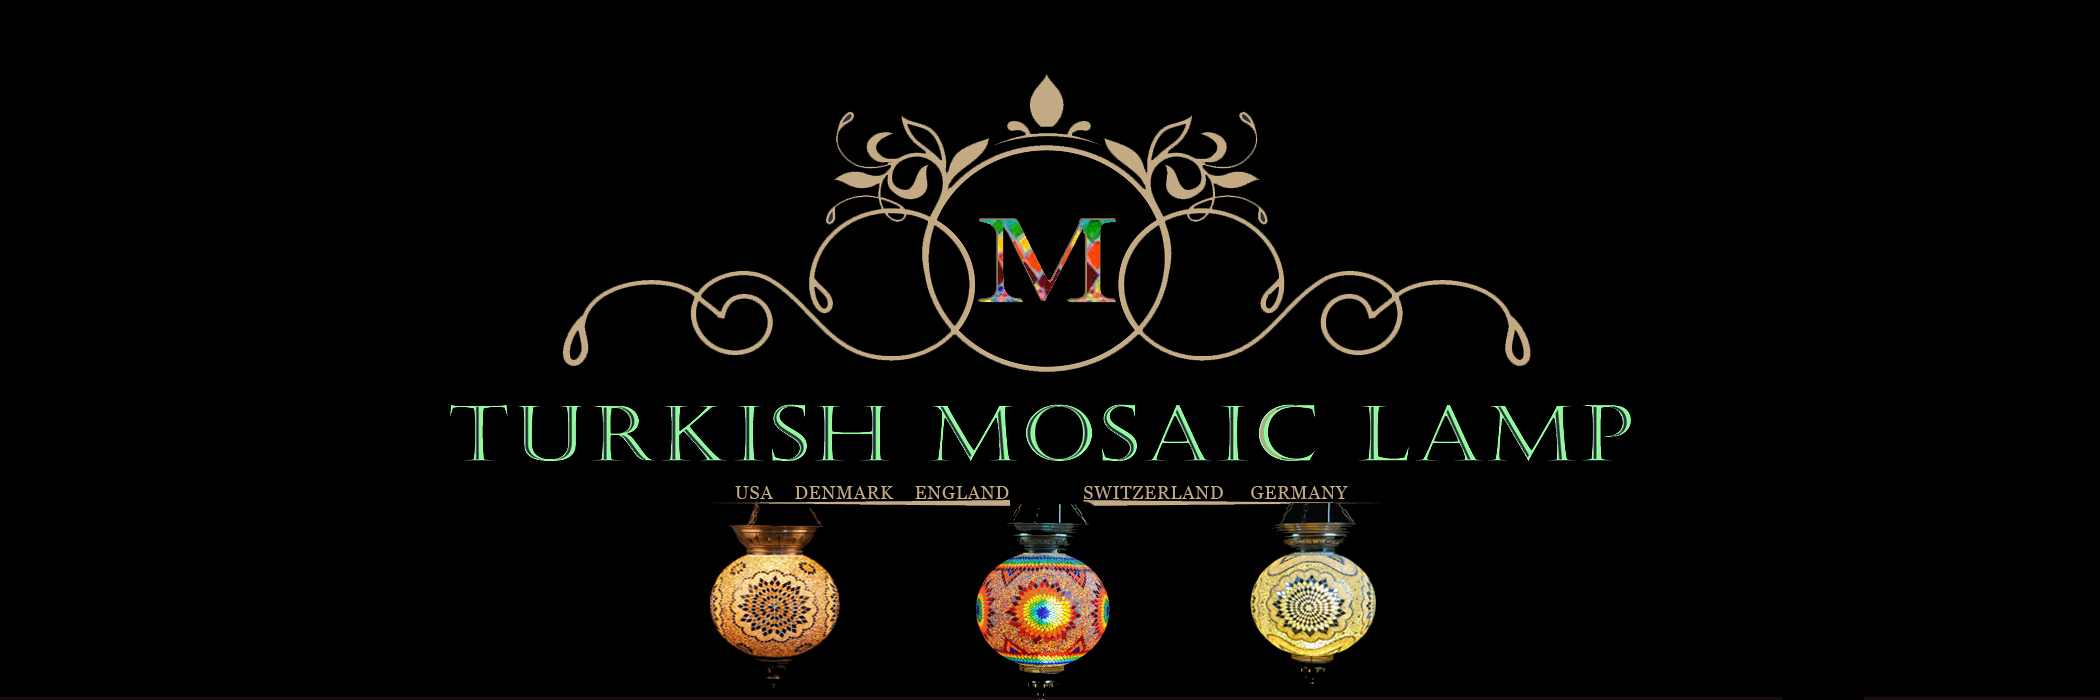 Mosaic Lamp, Mosaic Lamps, Mosaic Turkish Lamp